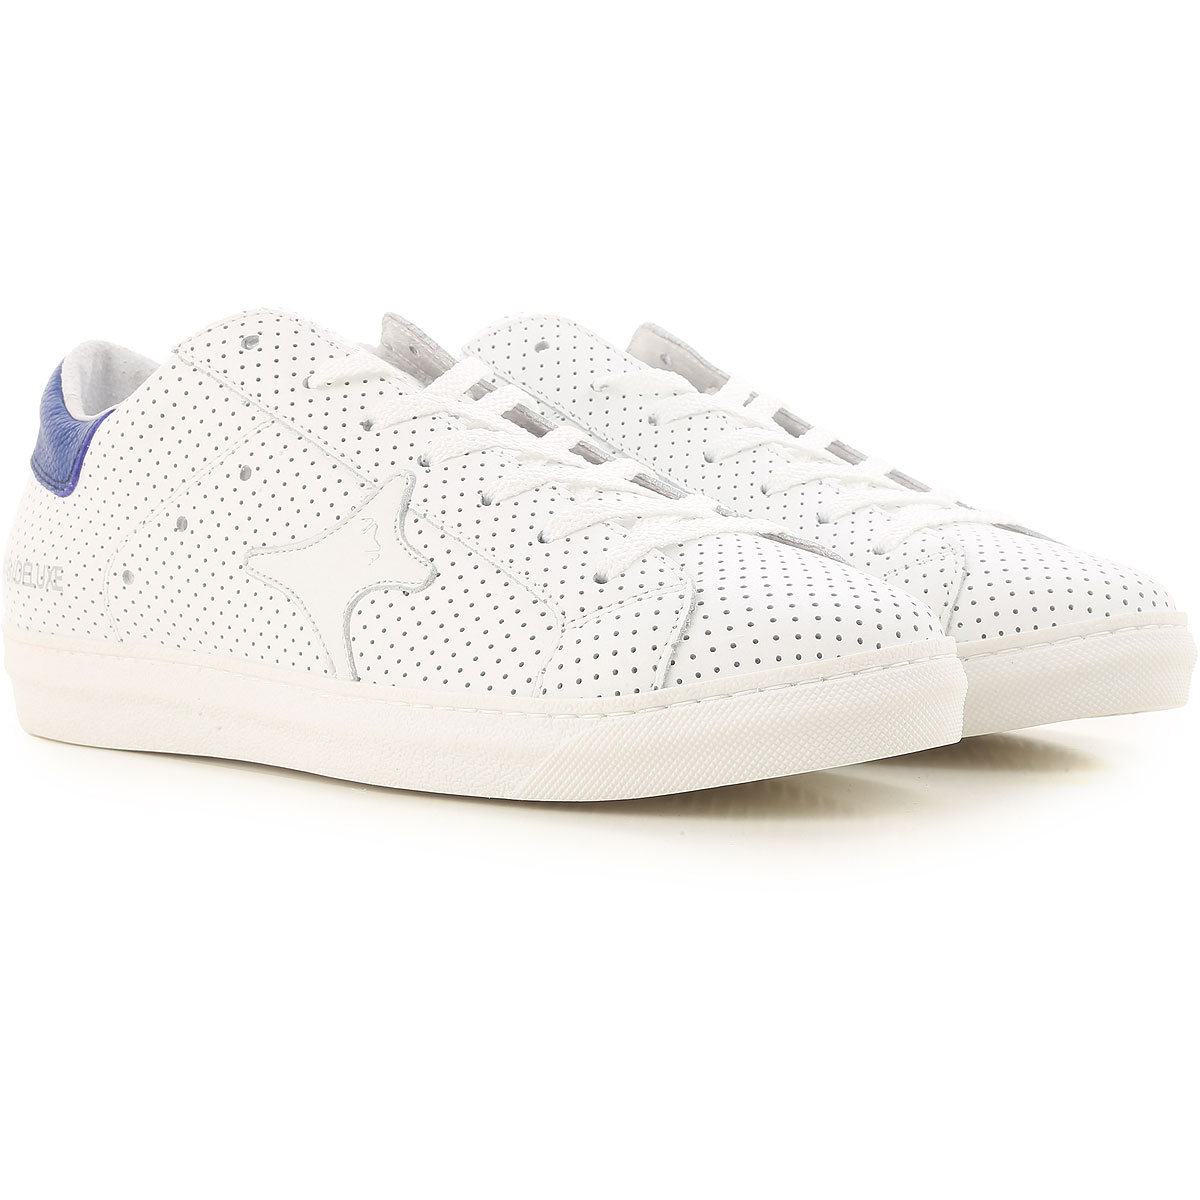 Image of Ama Brand Sneakers for Men On Sale, White, Leather, 2017, EUR 42 - UK 8 - USA 8.5 EUR 43 - UK 9 - USA 9.5 EUR 44 - UK 9.5 - USA 10 EUR 45 - UK 10.5 - USA 11 EUR 41 - US 8 - UK 7